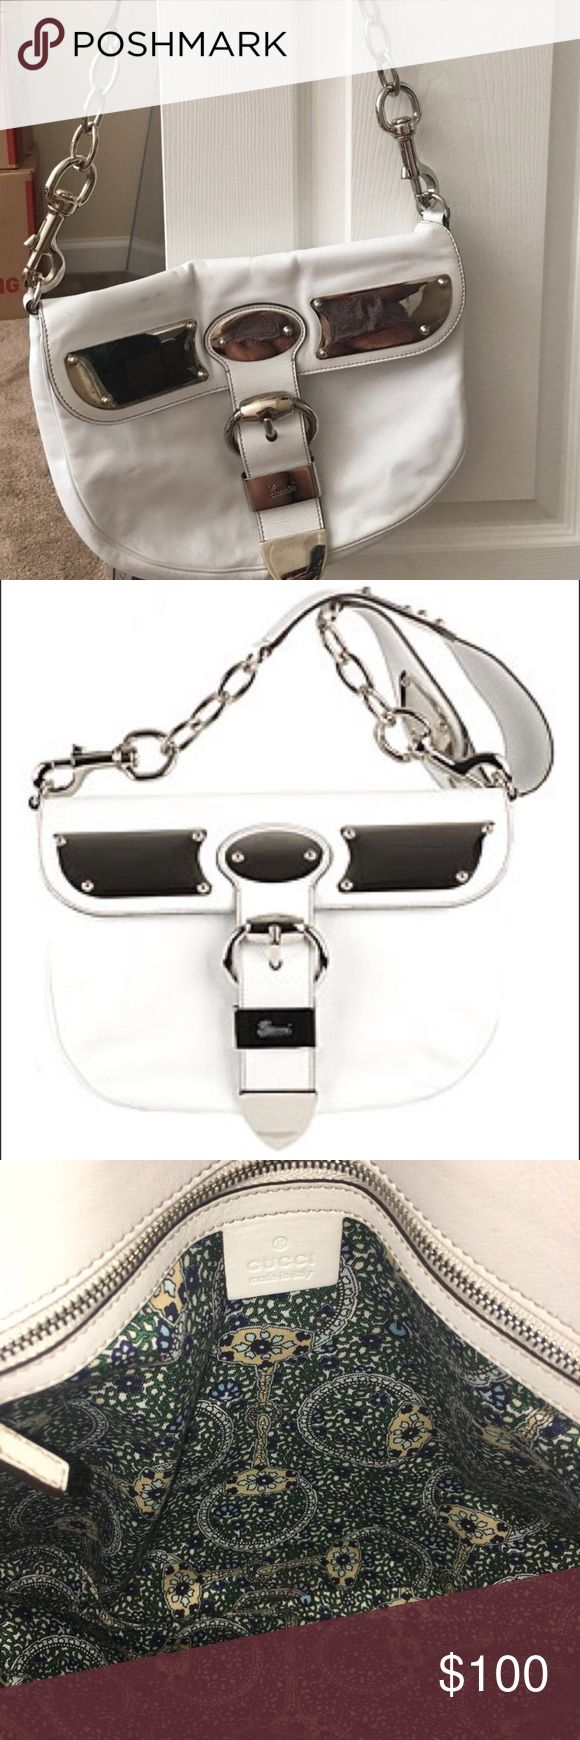 Gucci White Shoulder bag Bought frm another Posher , Authentic White Gucci shoulder bag, a couple marks (as shown in the pictures) but good condition Gucci Bags Shoulder Bags